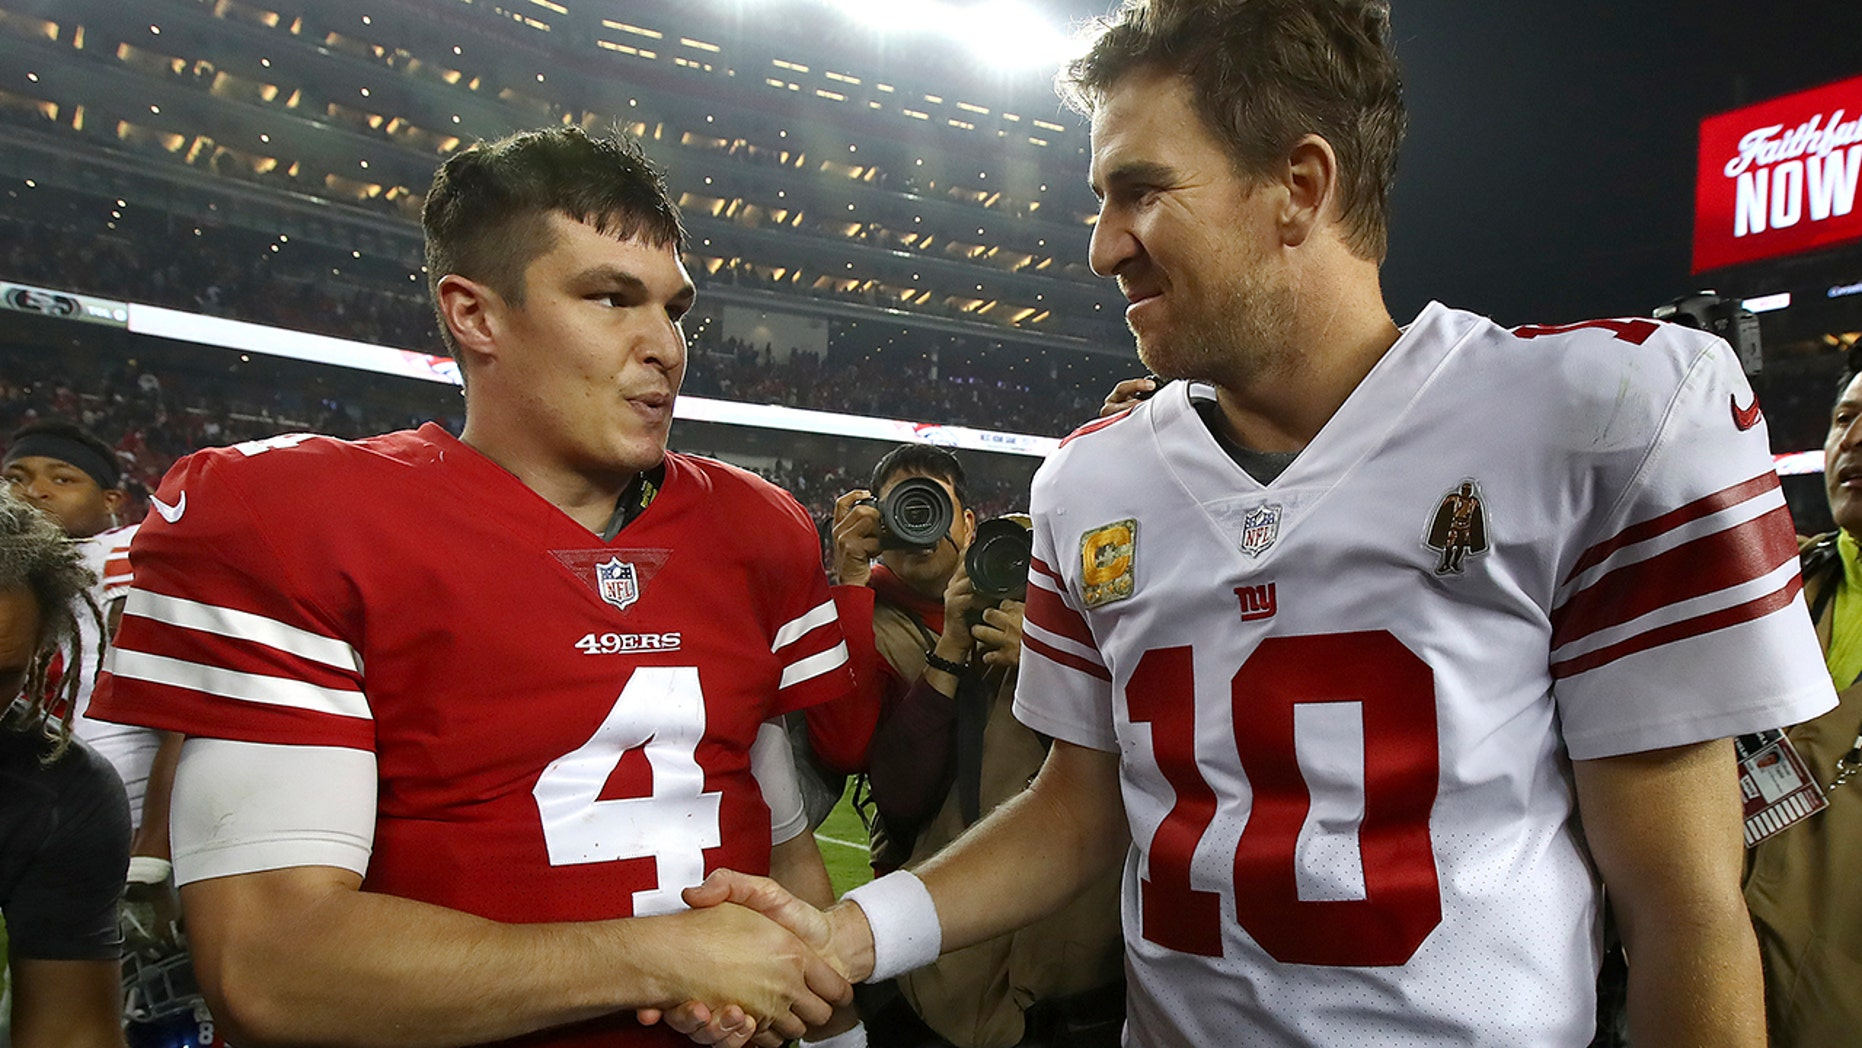 San Francisco 49ers quarterback Nick Mullens (4) shakes hands with New York Giants quarterback Eli Manning (10) after an NFL football game in Santa Clara, Calif., Monday, Nov. 12, 2018.